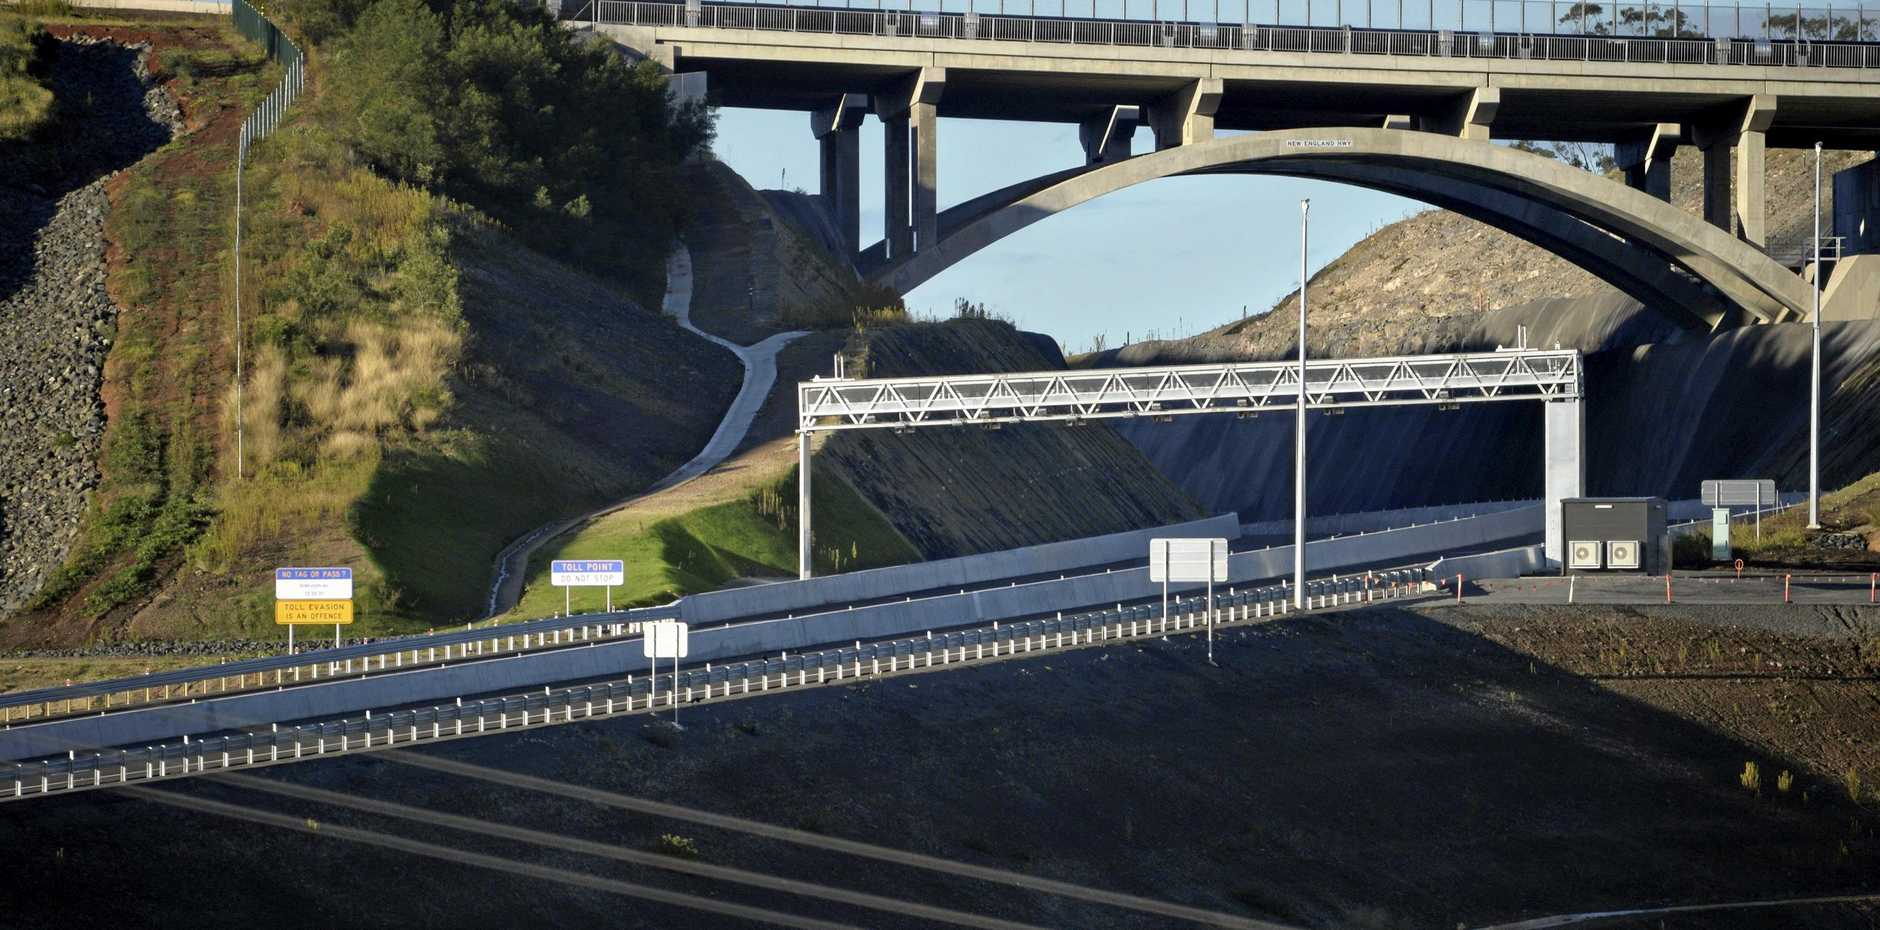 TOLL POINT: From September 8, trucks will have to pay a toll to use the new Toowoomba Bypass.